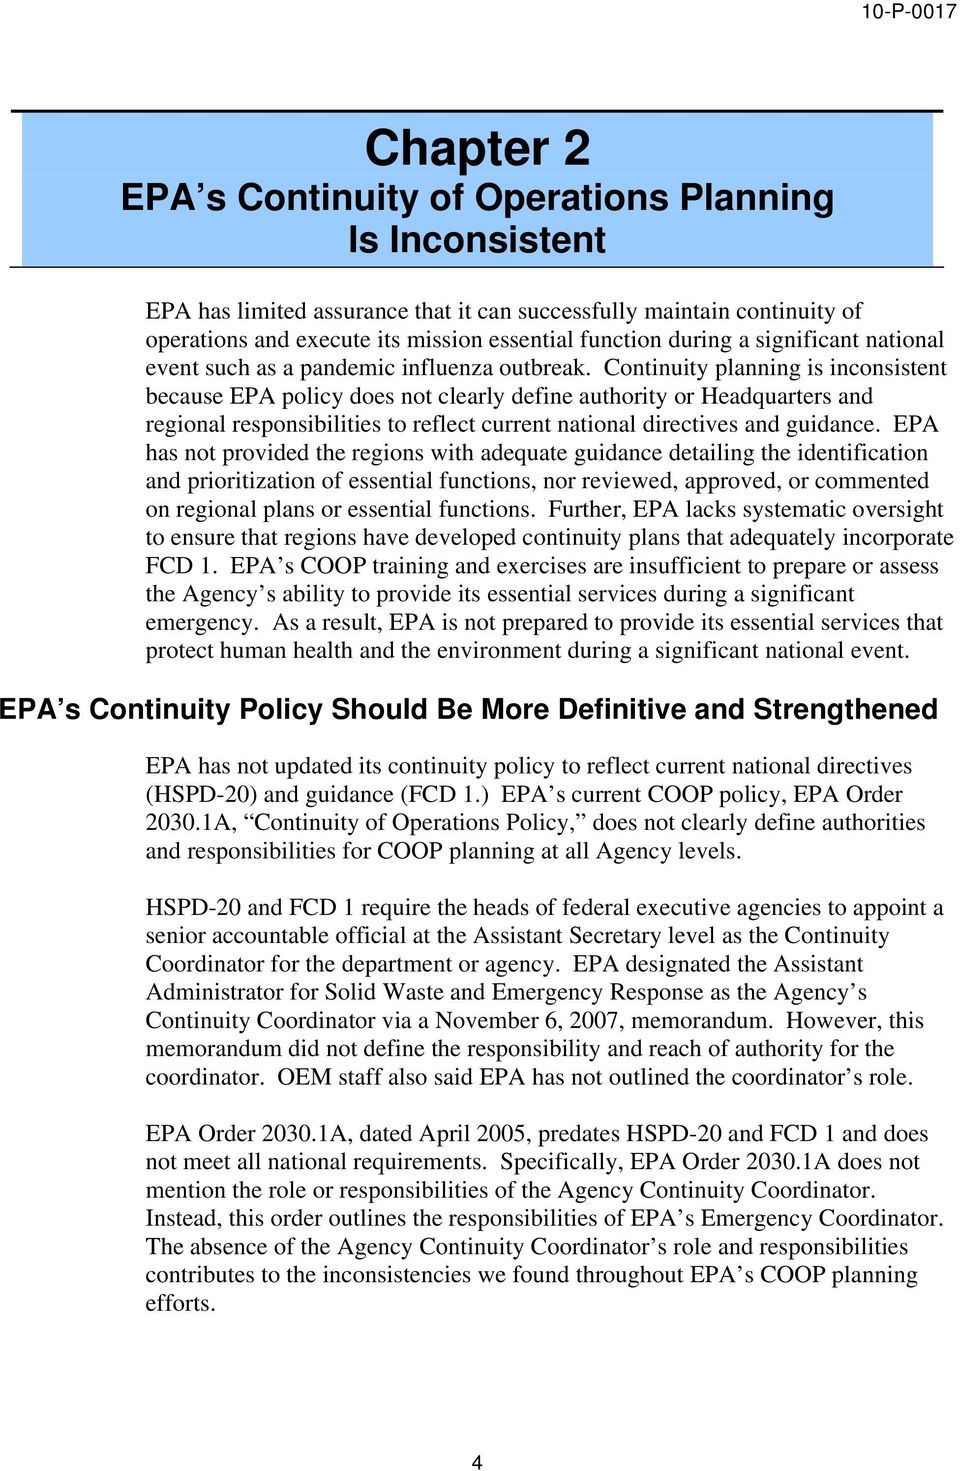 Continuity planning is inconsistent because EPA policy does not clearly define authority or Headquarters and regional responsibilities to reflect current national directives and guidance.